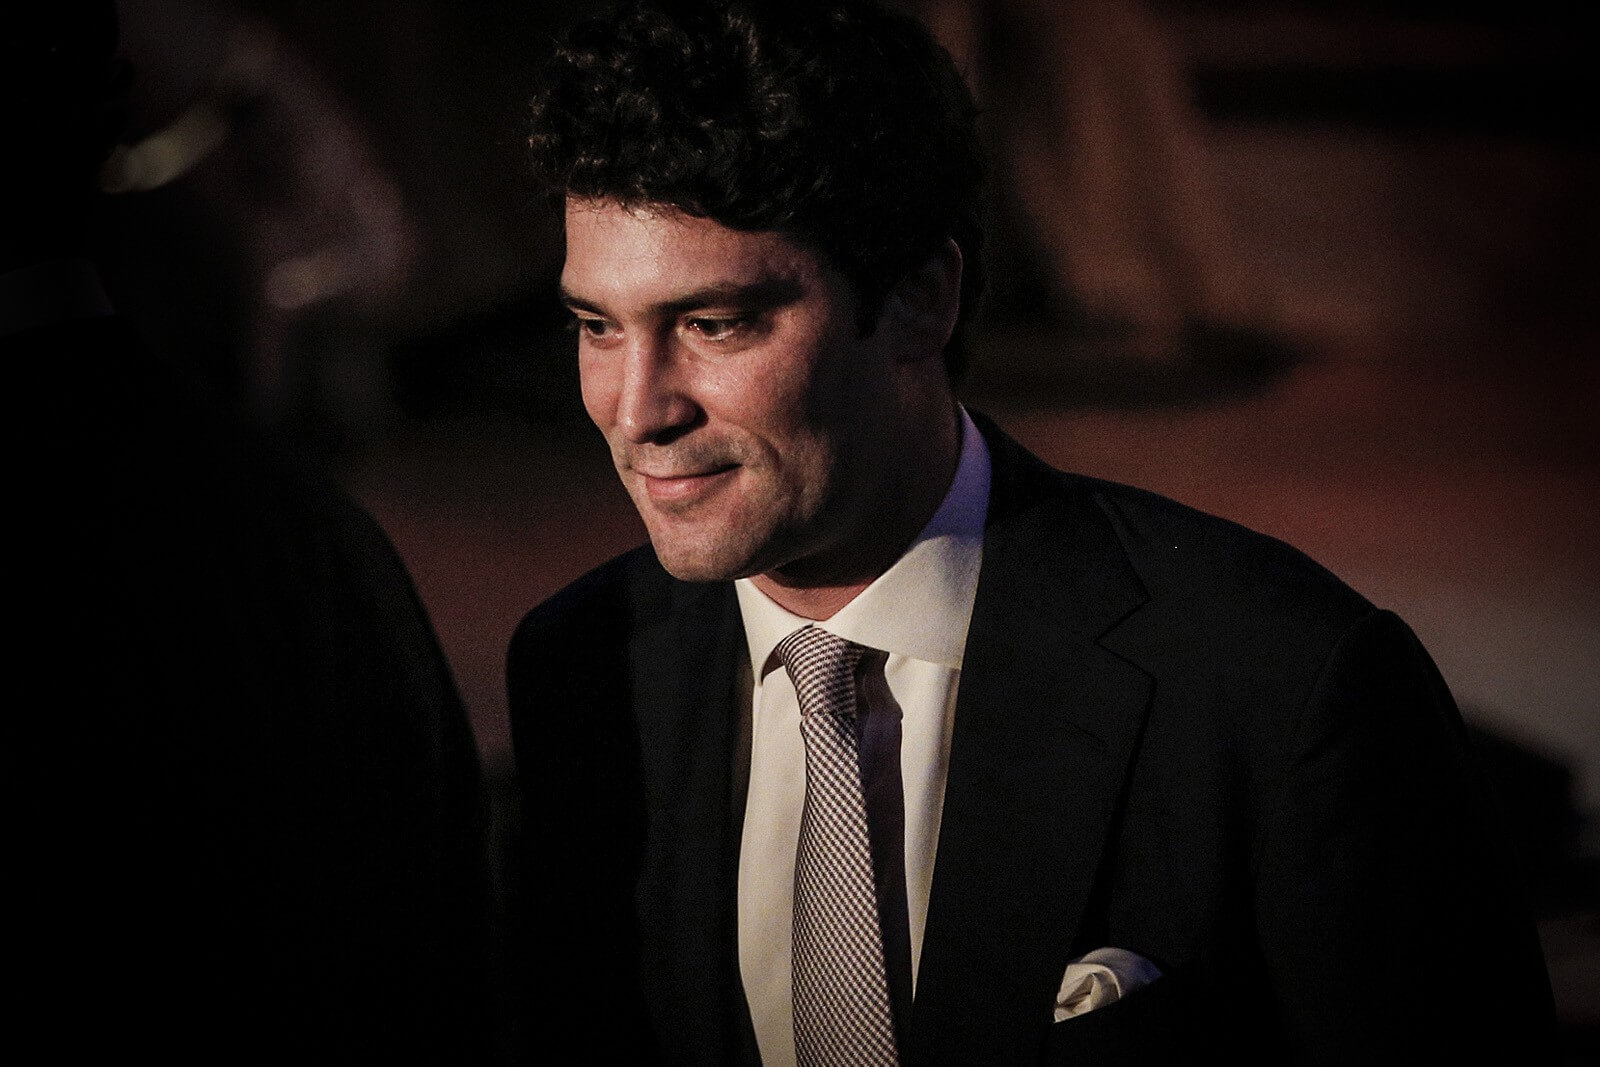 #10 Alejandro Santo Domingo Davila | Beautiful Billionaires Around The World | Image Source: billionaire.com